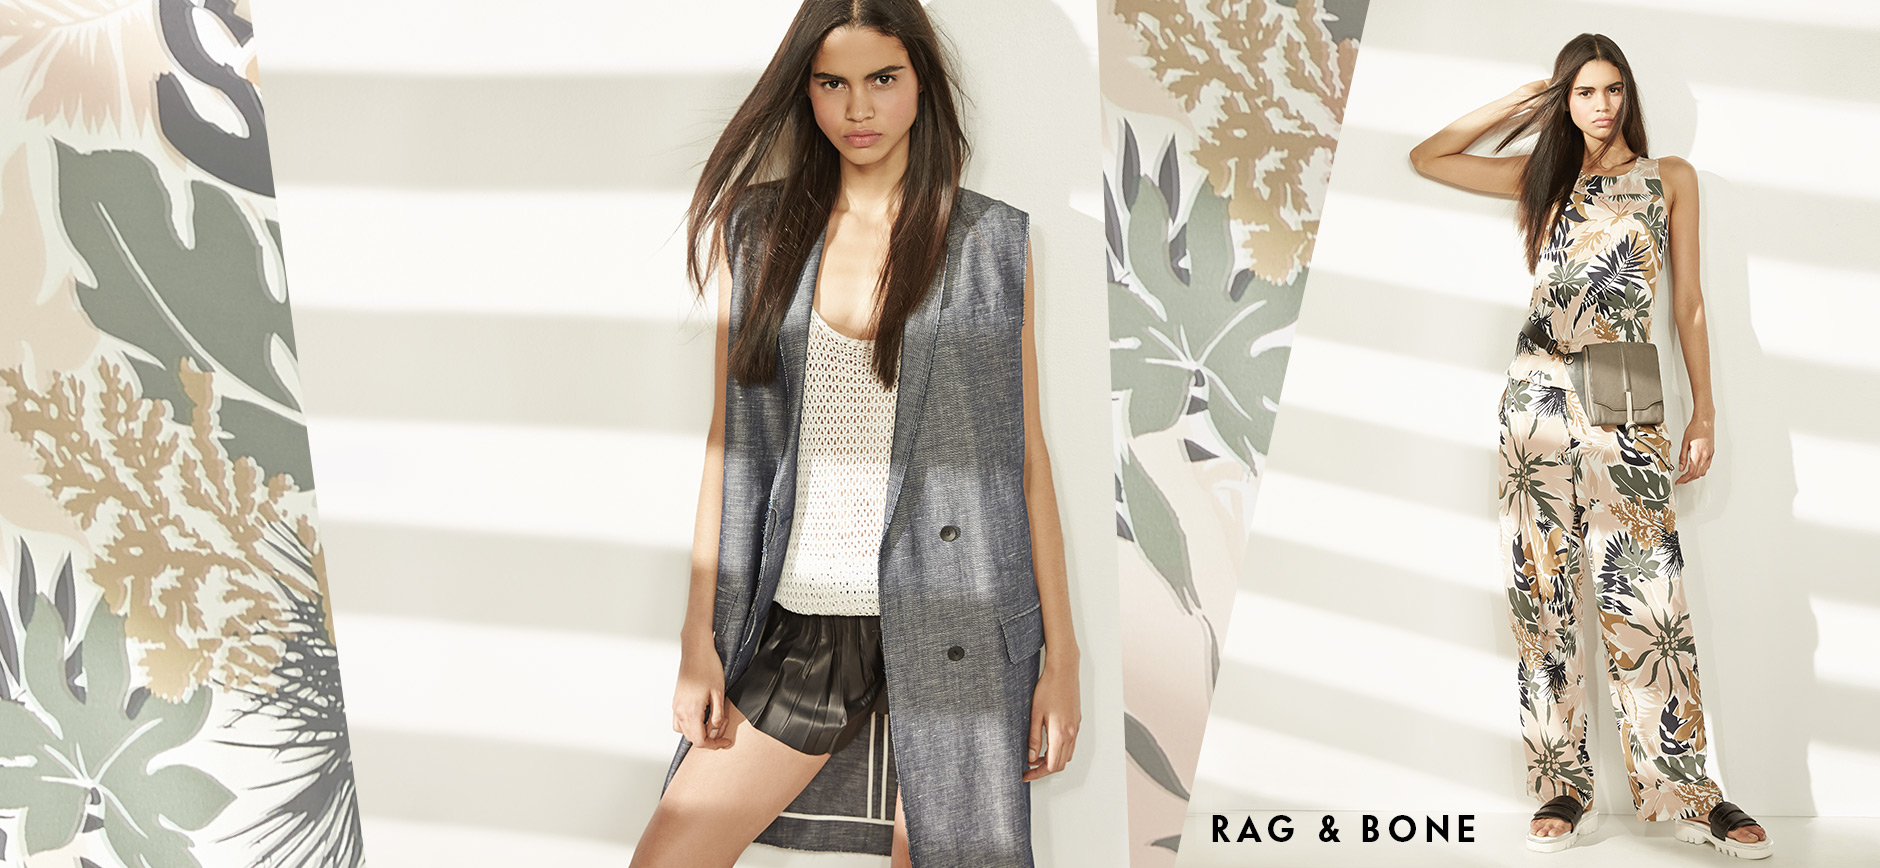 Rag & Bone Lookbook